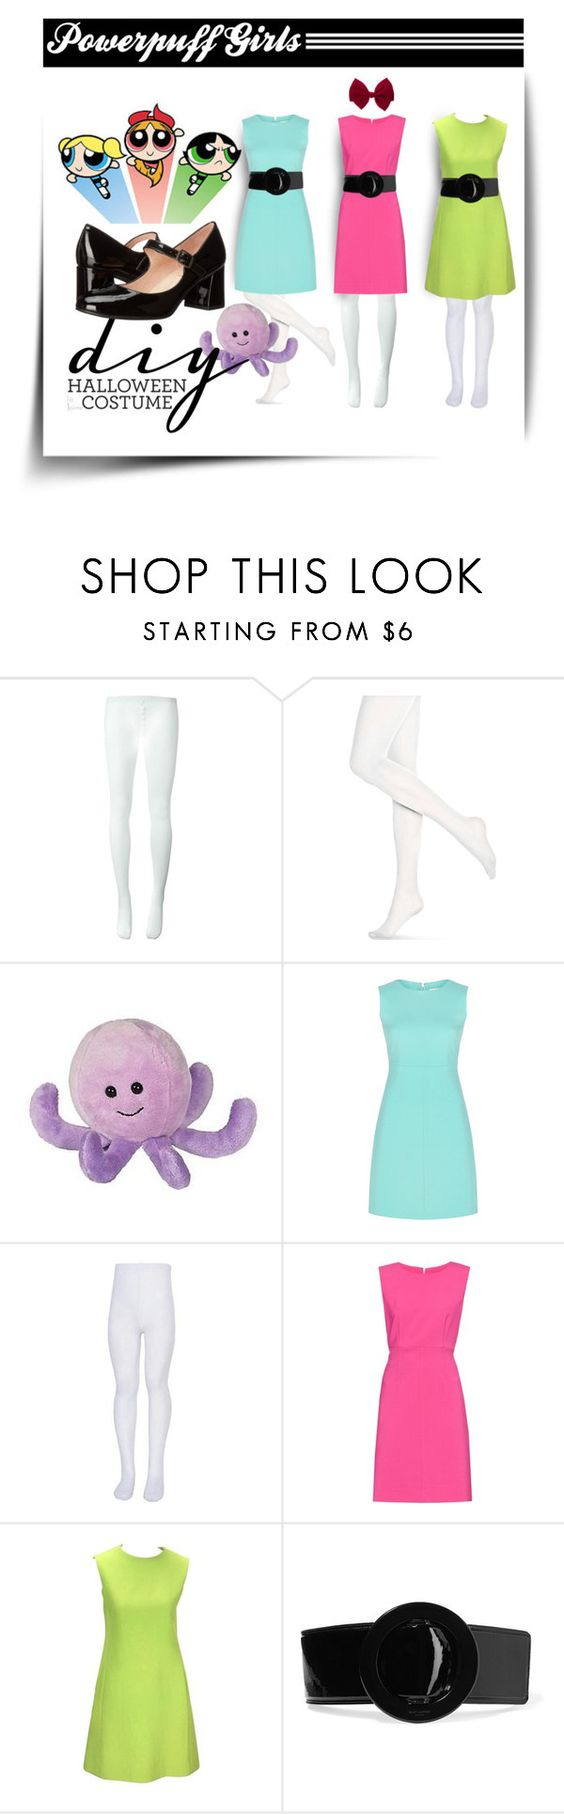 """DIY Halloween Costume"" by vingananee ❤ liked on Polyvore featuring Comme des Garçons, THE POWERPUFF GIRLS, Hue, Diane Von Furstenberg, Yves Saint Laurent, claire's, French Sole FS/NY, powerpuff, halloweencostume and DIYHalloween"